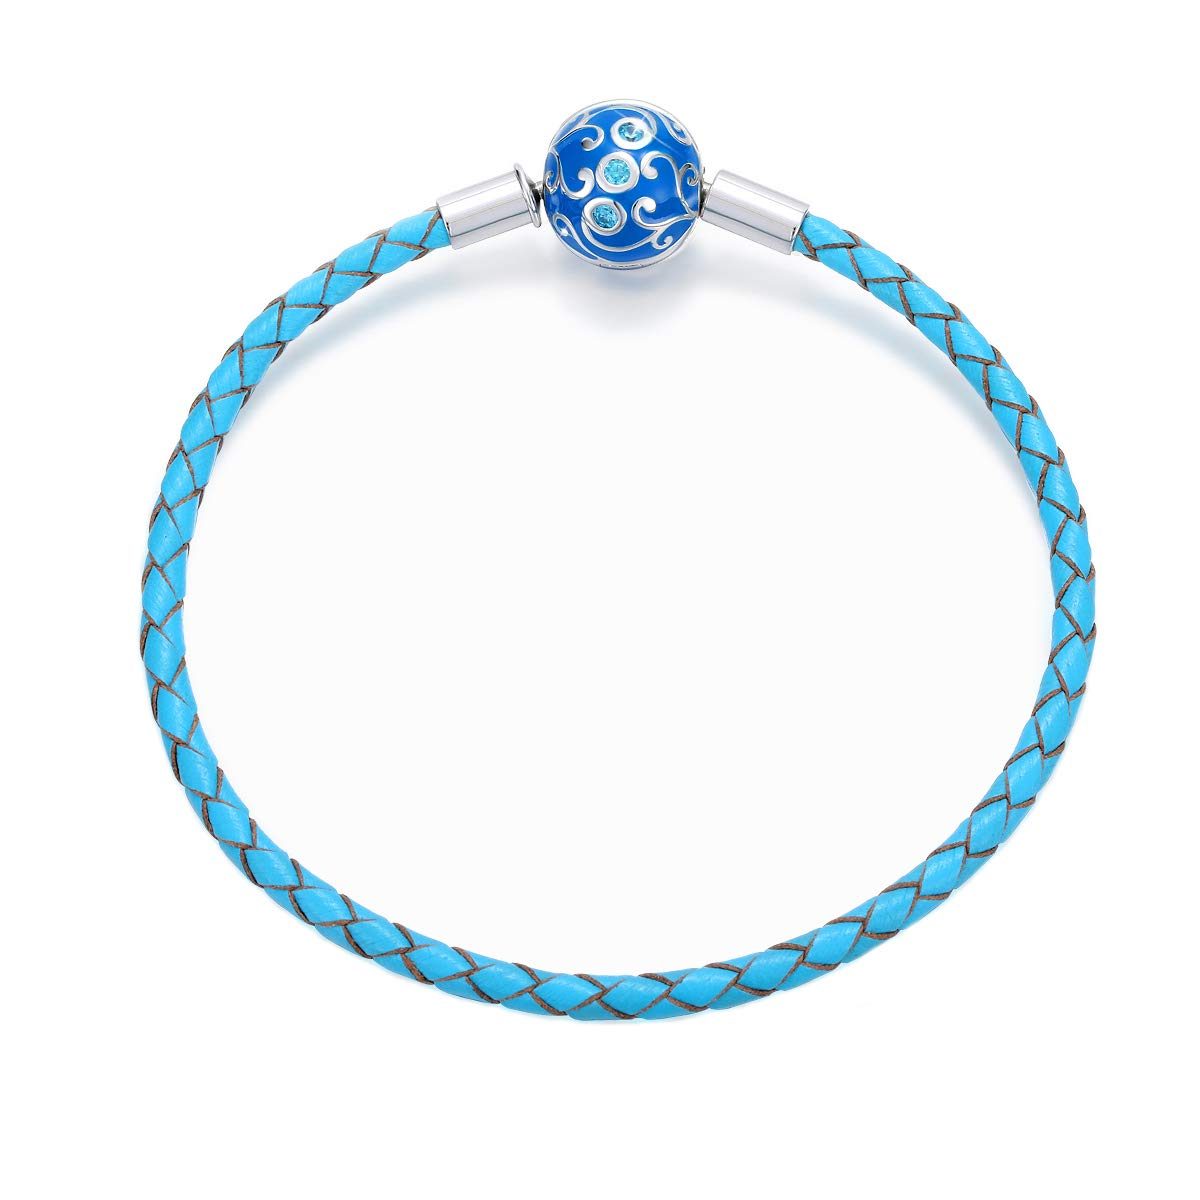 FOREVER QUEEN GenuineBlue Braided Leather Bracelet with 925 Sterling Silver Snap Clasp Charms CZ for Women Teen Fits European Beads Charm